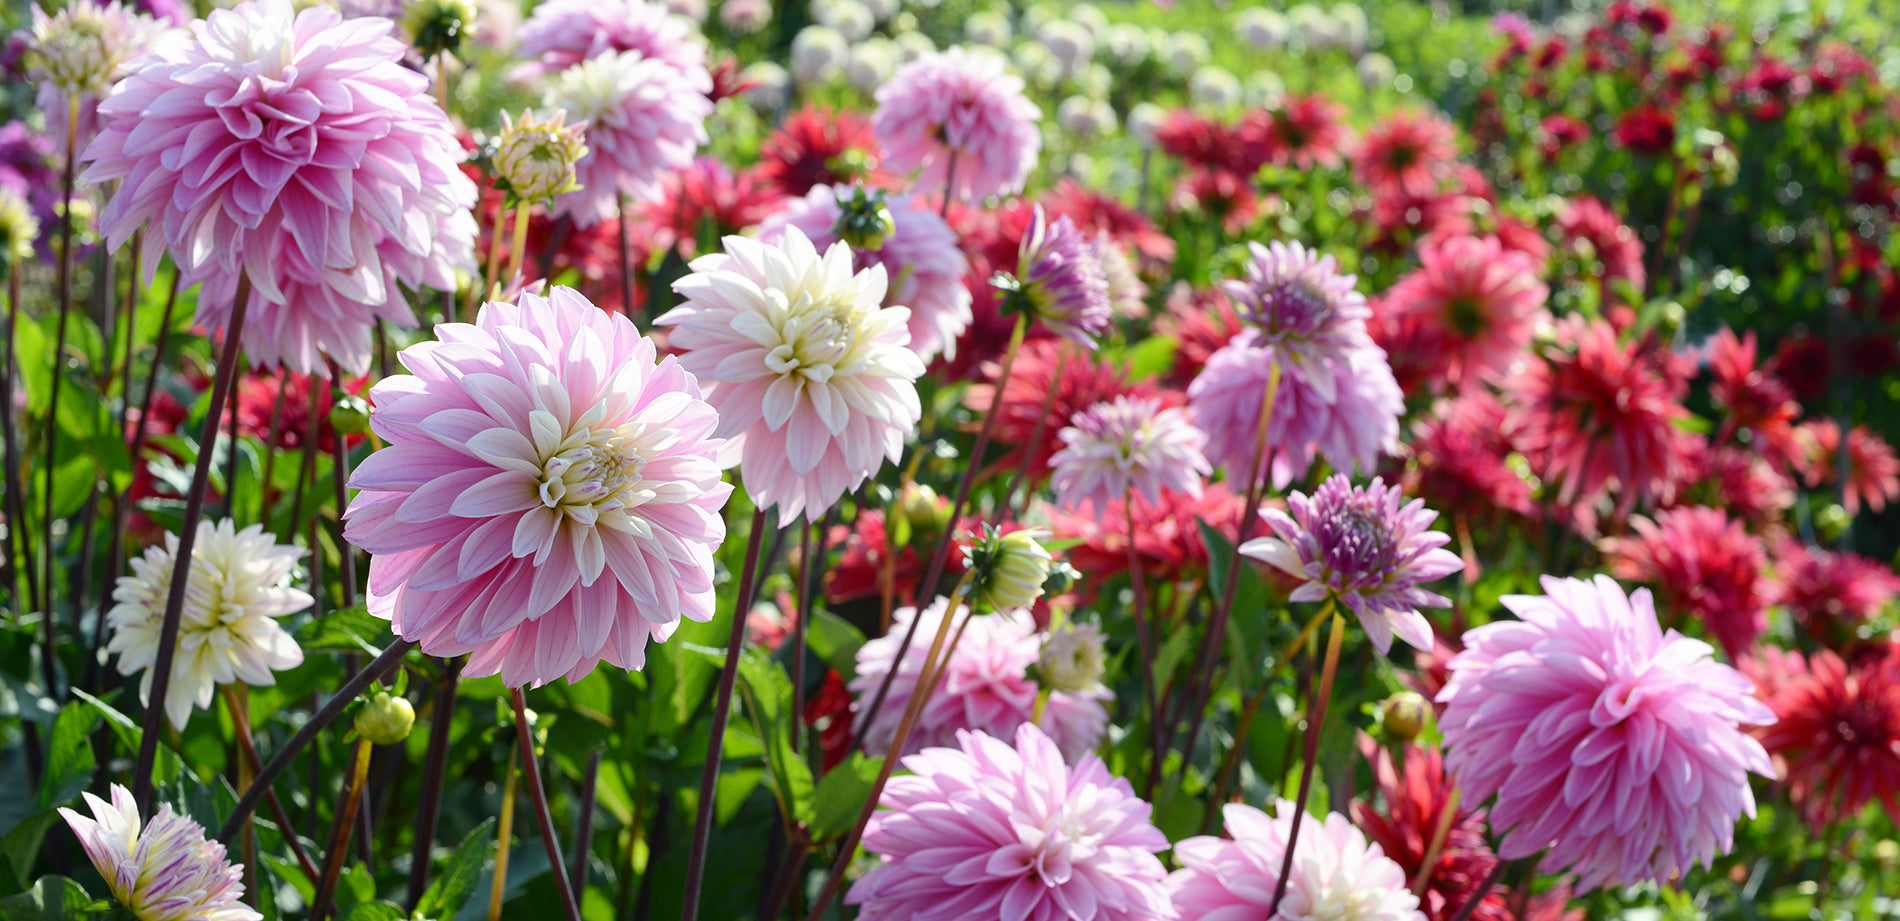 Flowering dahlias in the field